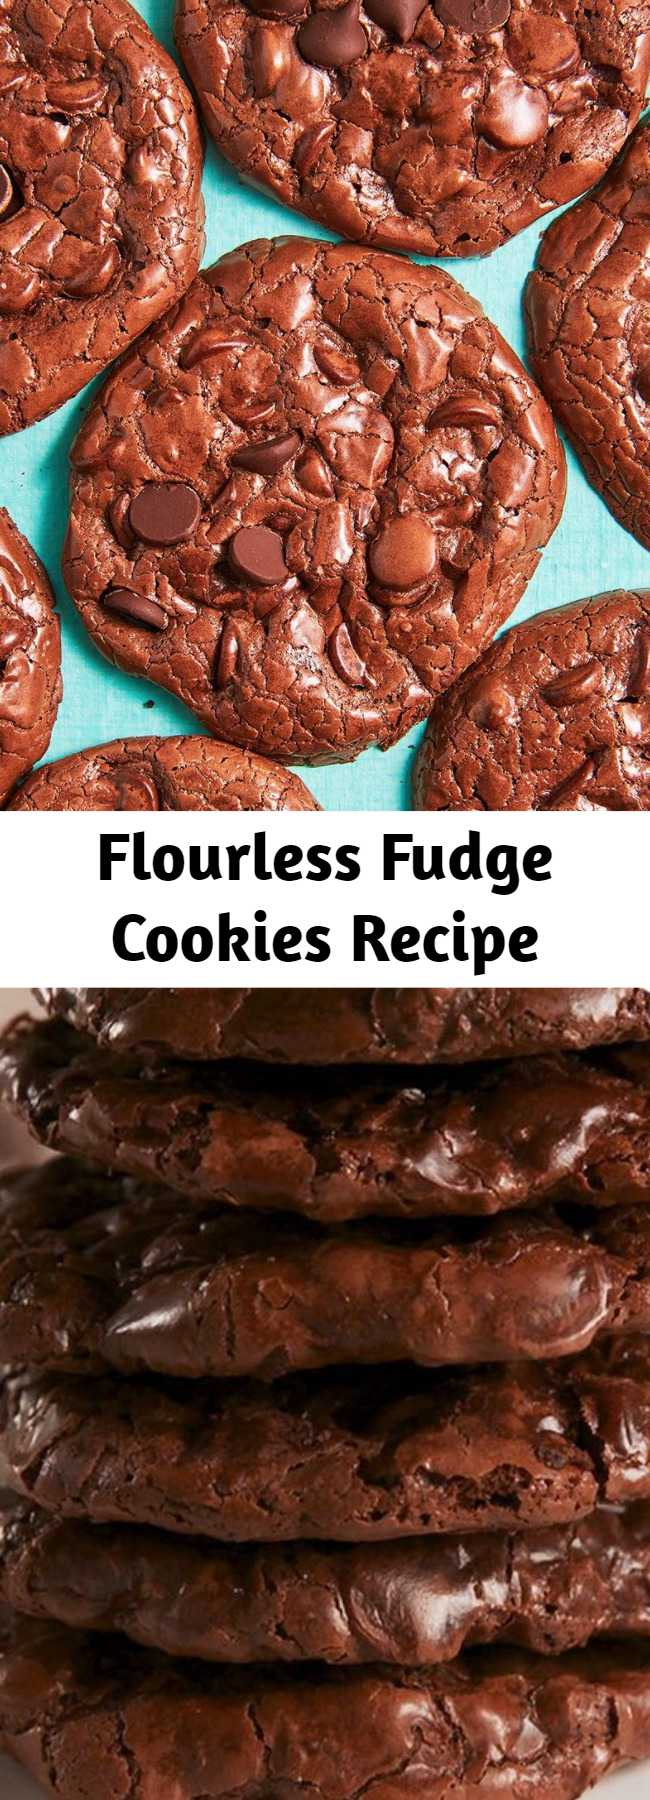 Flourless Fudge Cookies Recipe - These delicious cookies don't have any flour or butter but are still amazing. If she loves flourless cake, these cookies will be a new favorite.